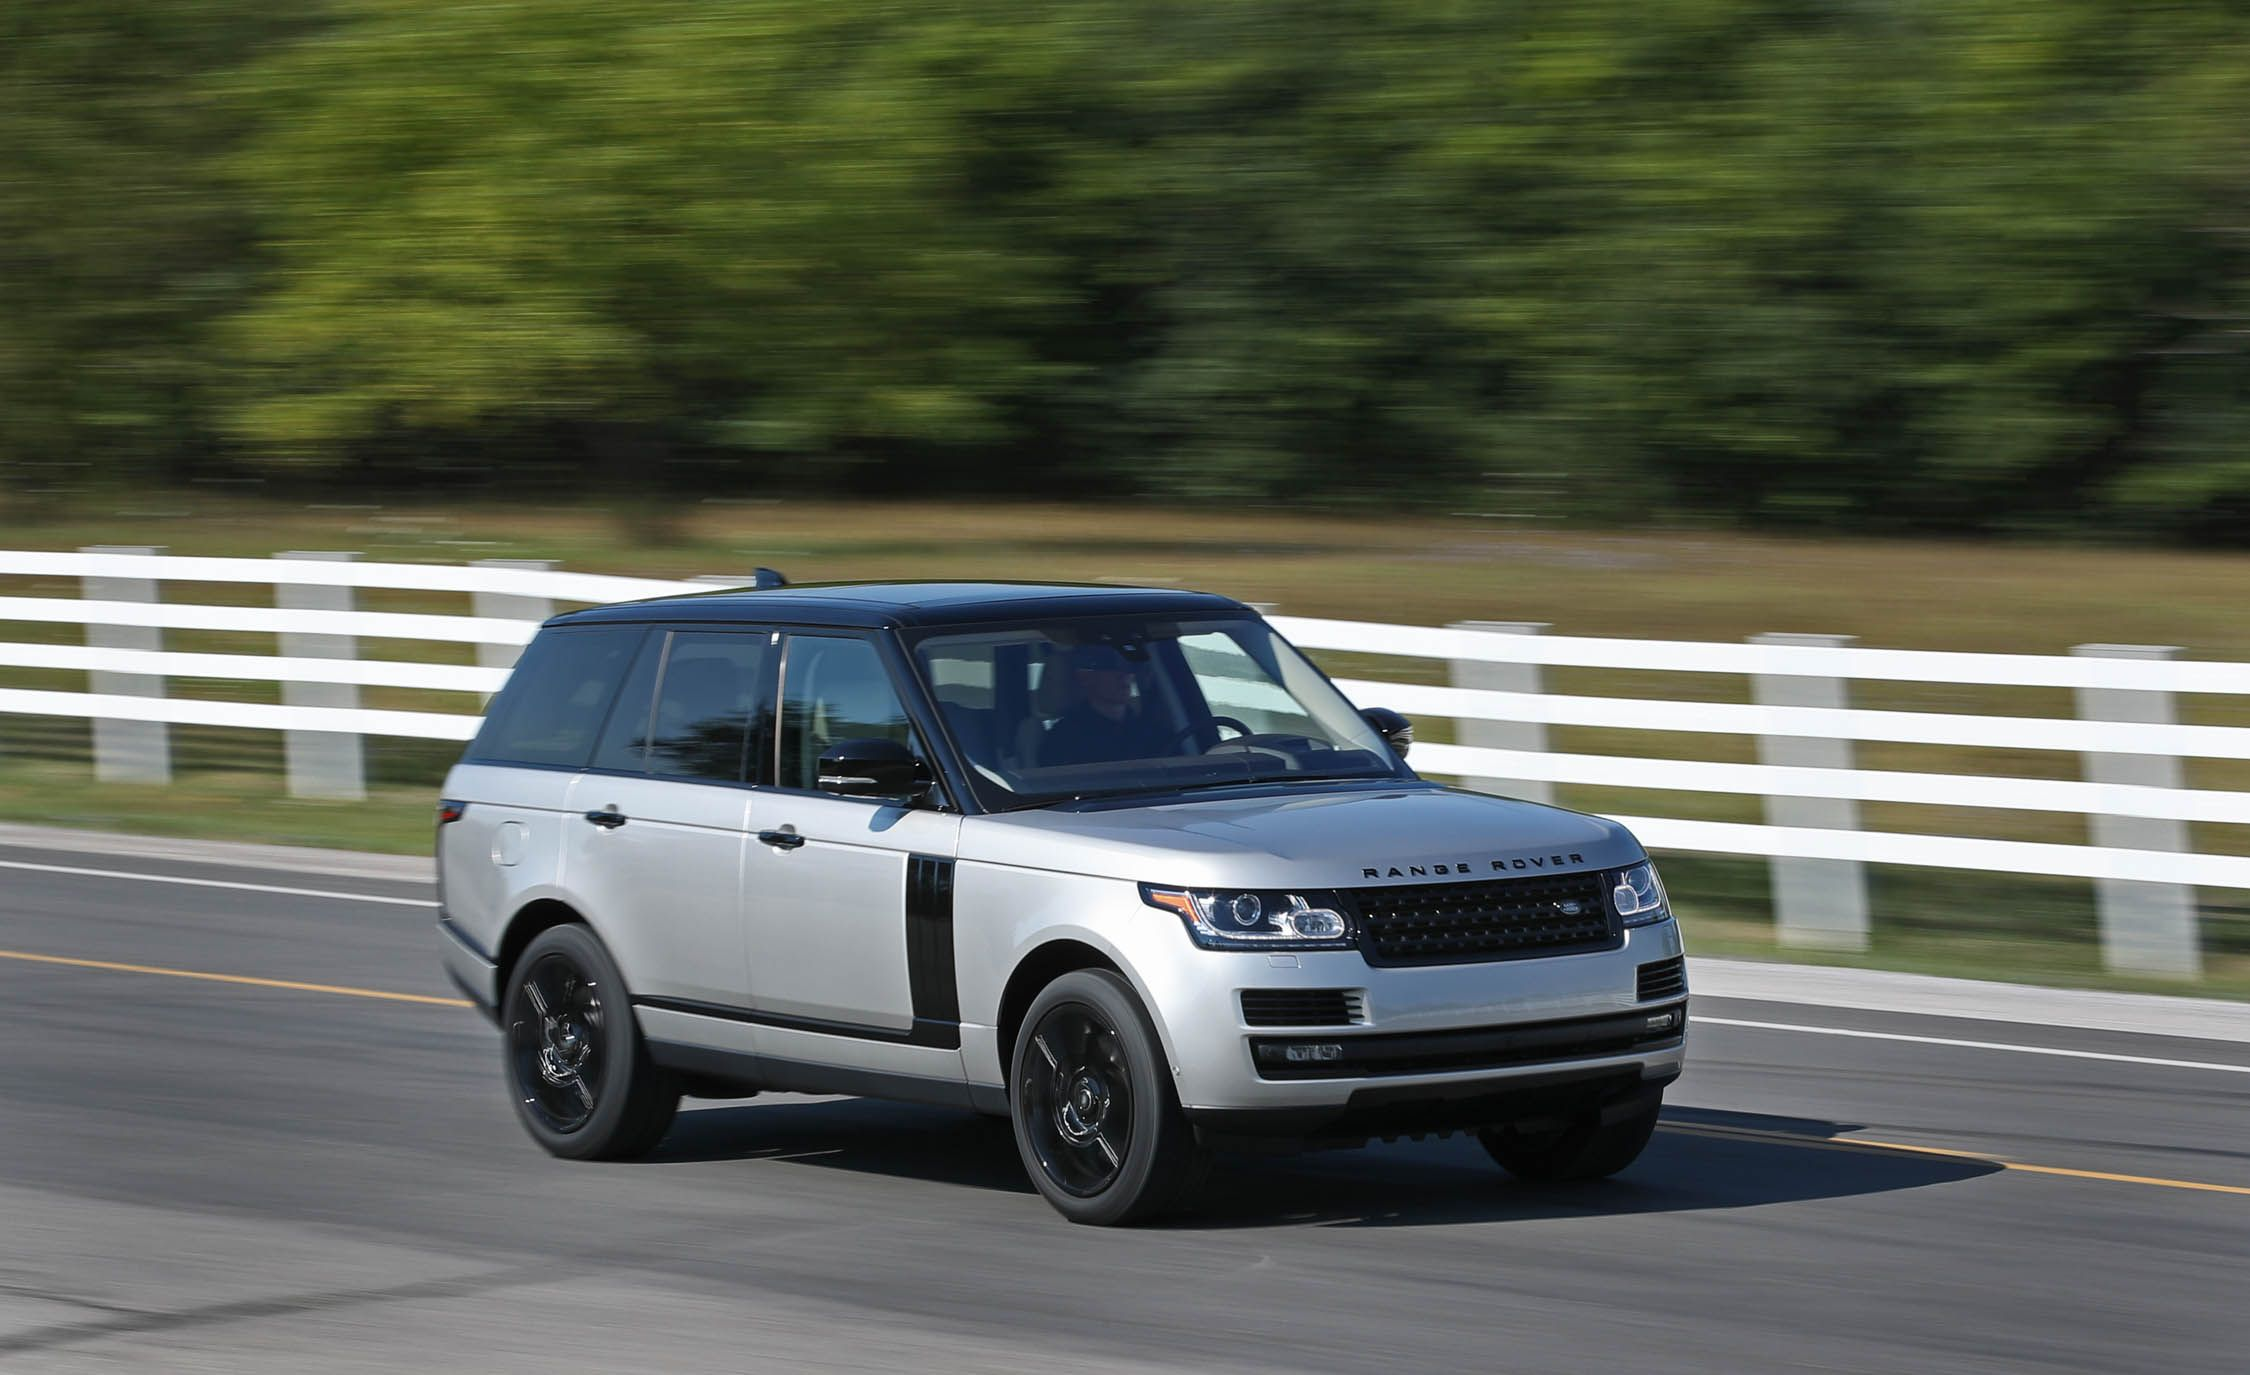 2017 Land Rover Range Rover Gallery